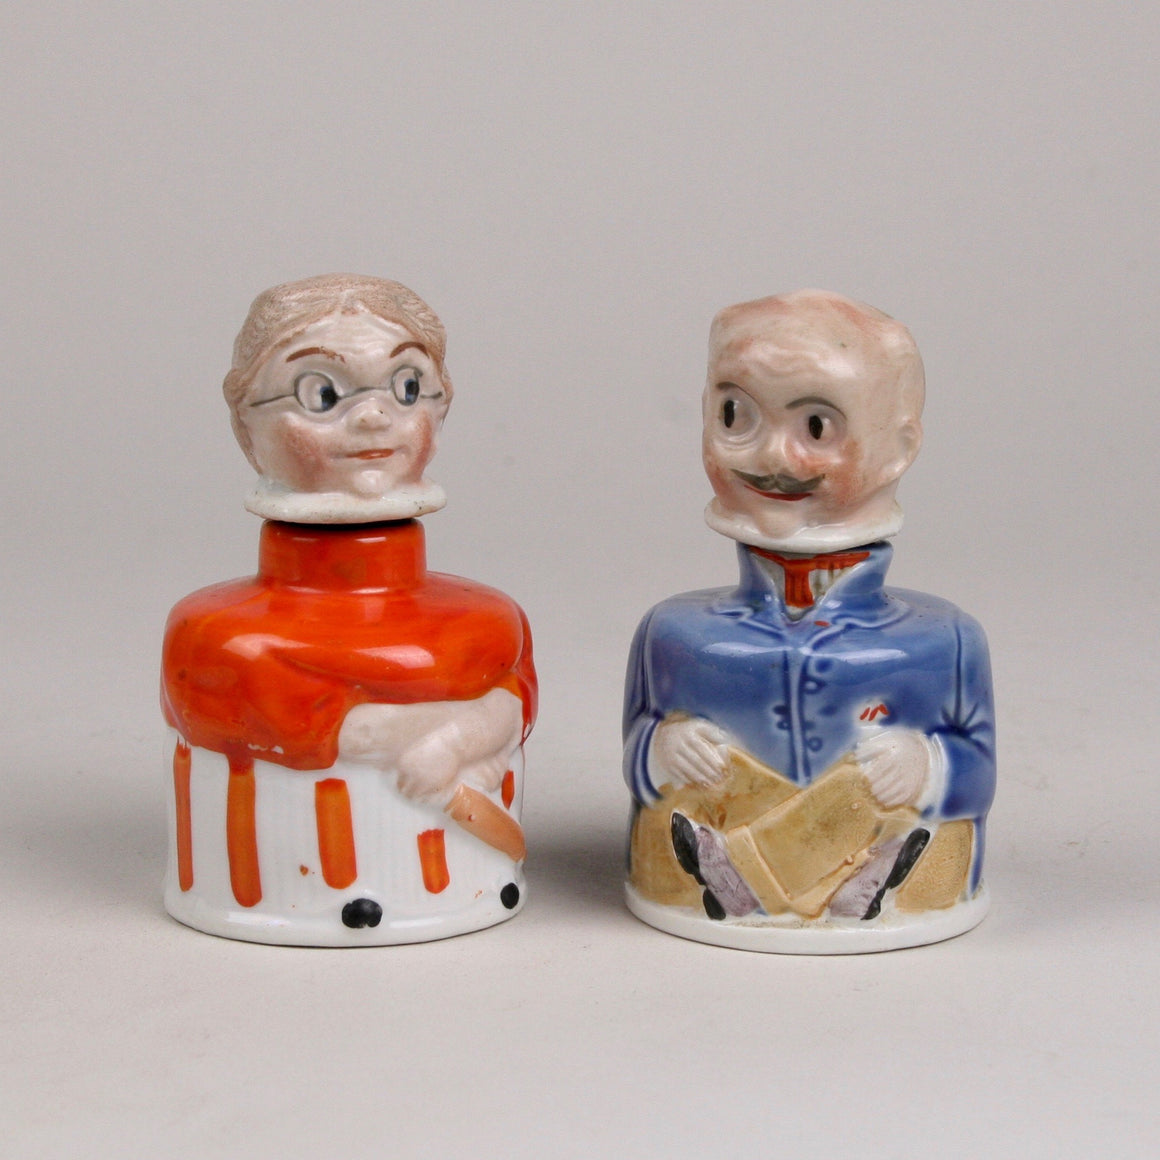 Ma and Pa Carter's Inx Figural Ink Bottles, Porcelain with Cork Stoppers to Hold Head on Bottle, Vintage from 1920s